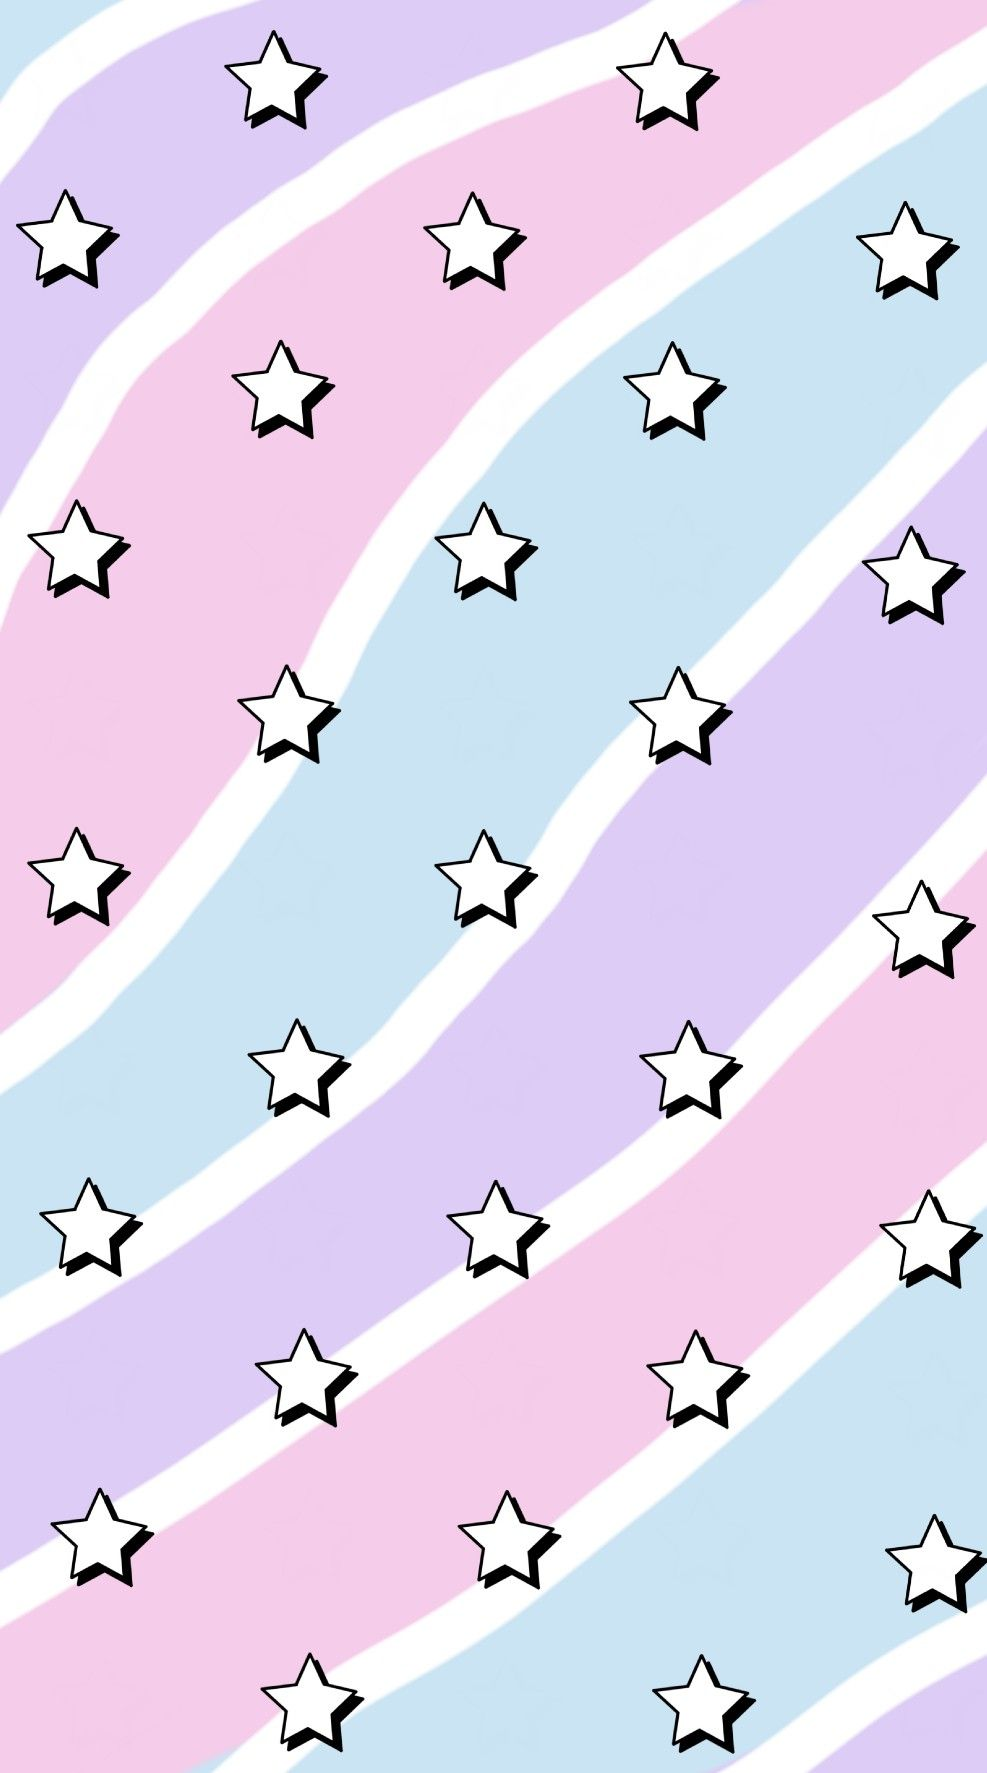 Simple Aesthetic Stars Phone Wallpaper Madewithpicsart Iconic Wallpaper Cute Patterns Wallpaper Edgy Wallpaper